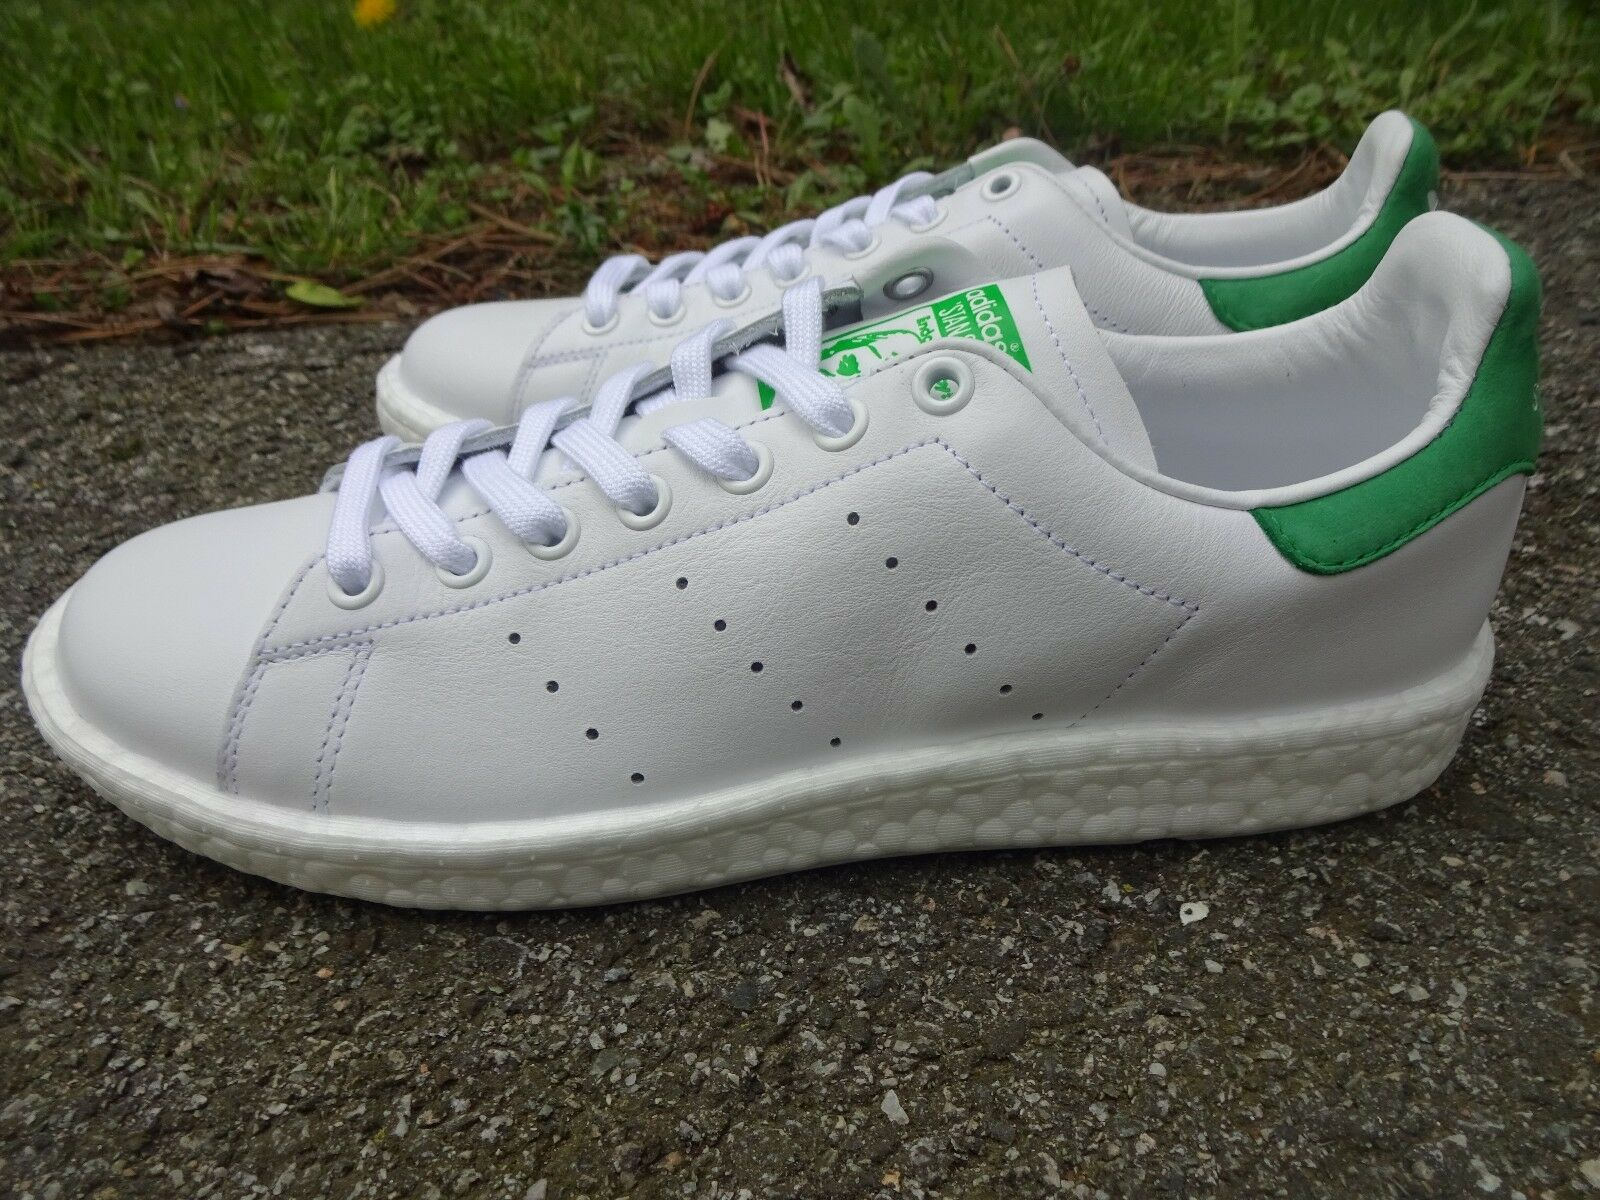 Adidas Boost Stan Smith White w Green Suede BB0008 men's shoes sneakers trainers